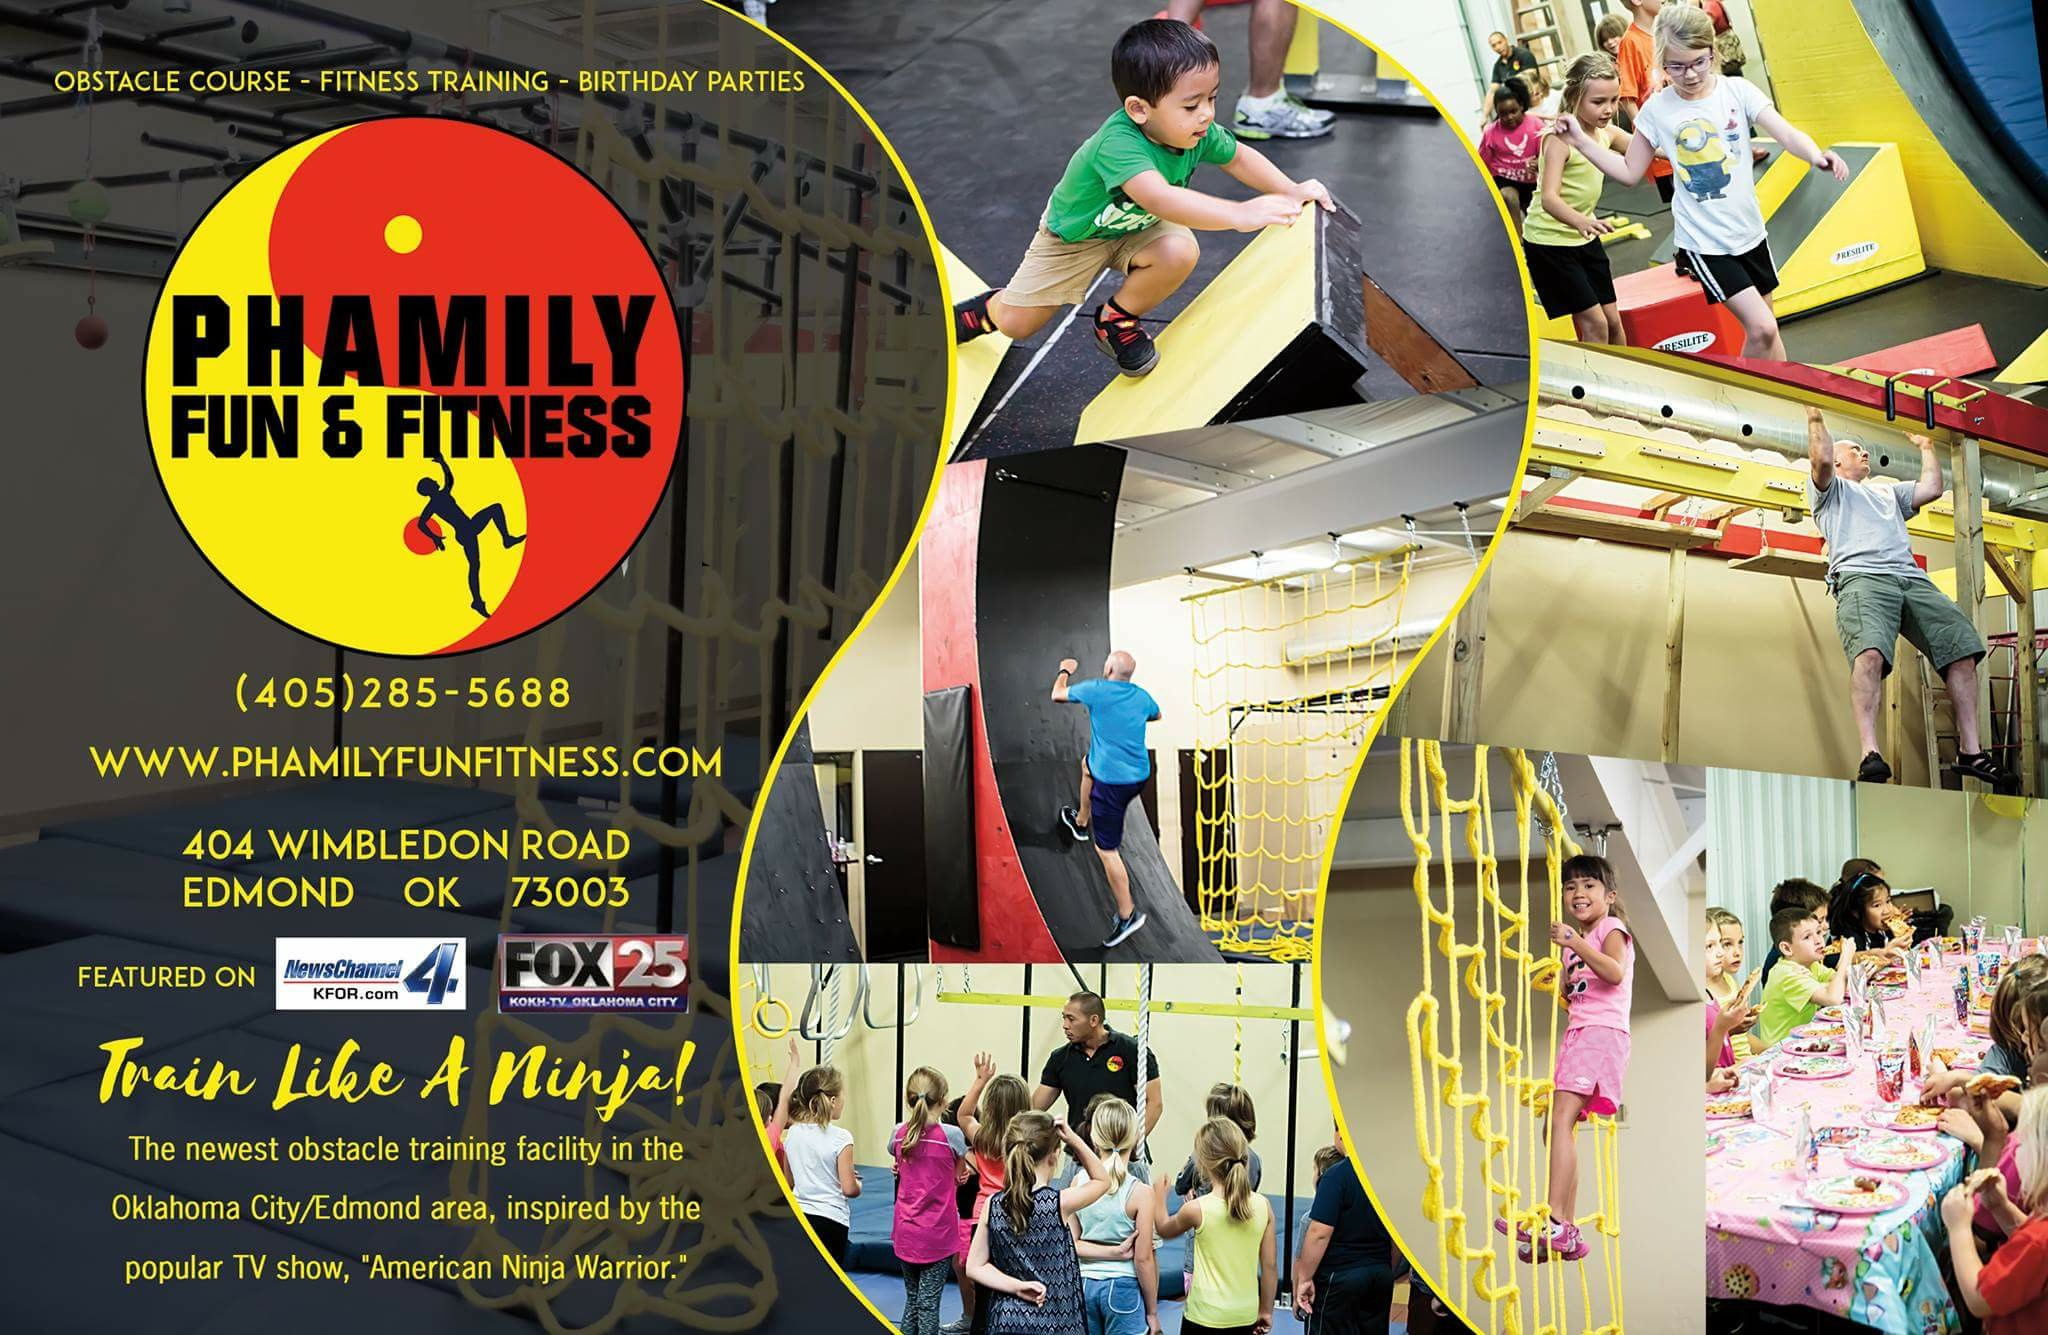 Phamily Fun Fitness 404 Wimbledon Rd Edmond OK 73003 YPcom